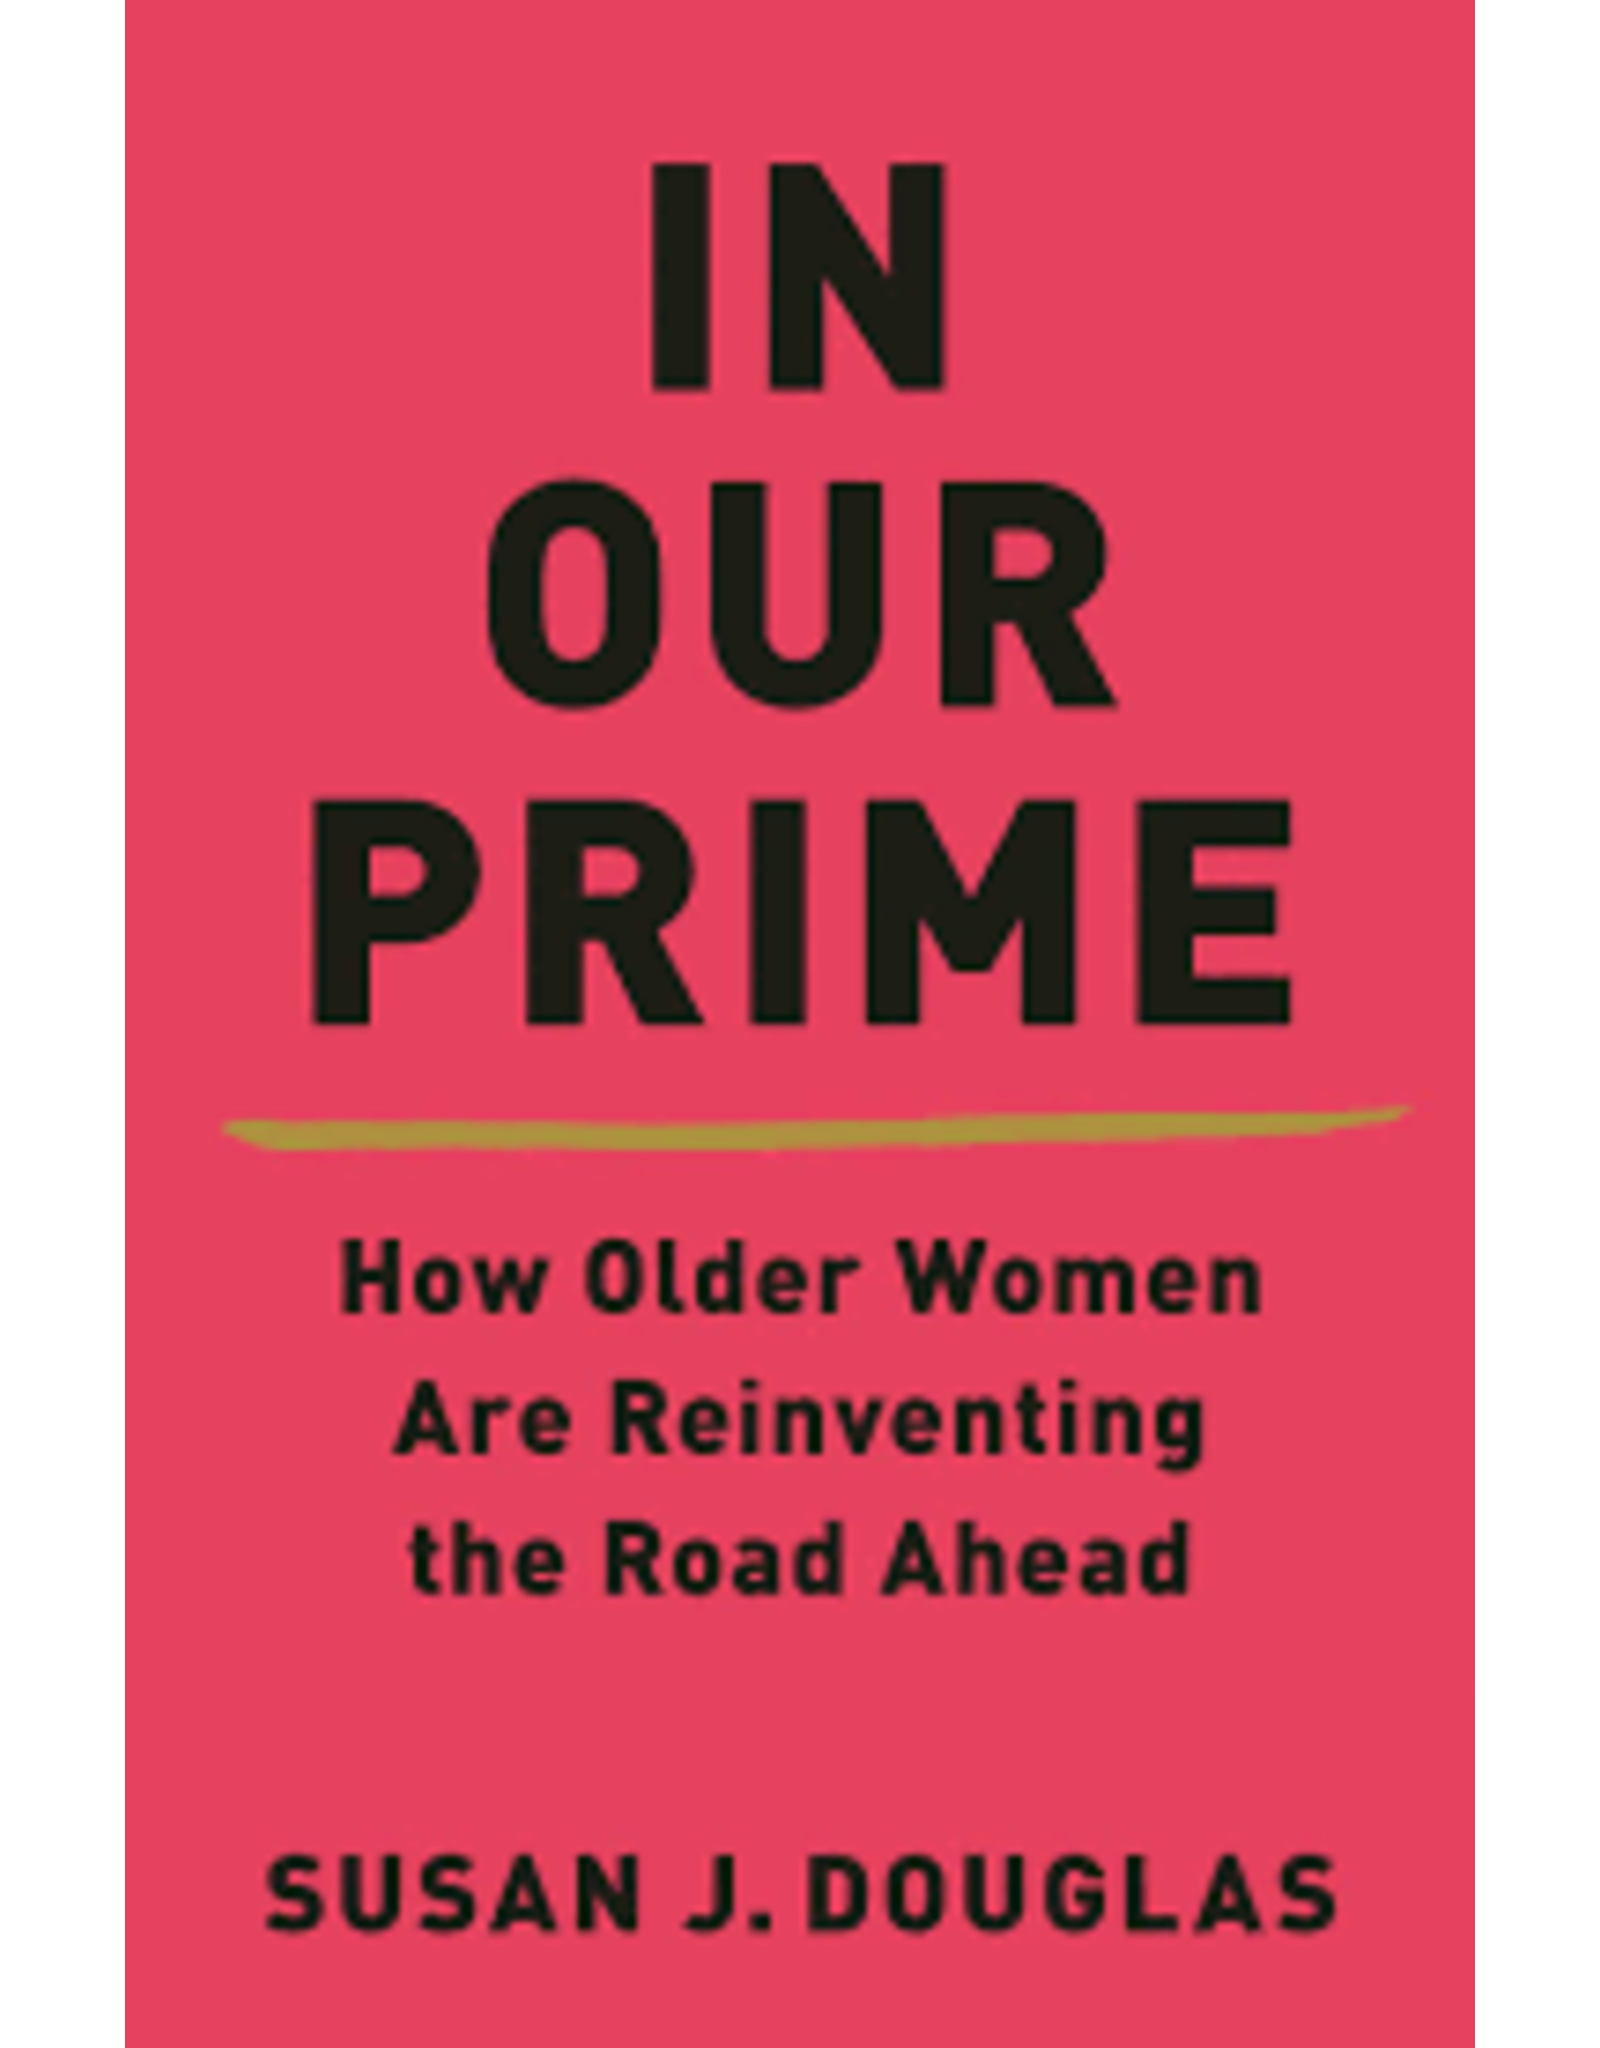 Books In Our Prime: How Older Women are Reinventing the Road Ahead by Susan J. Douglas